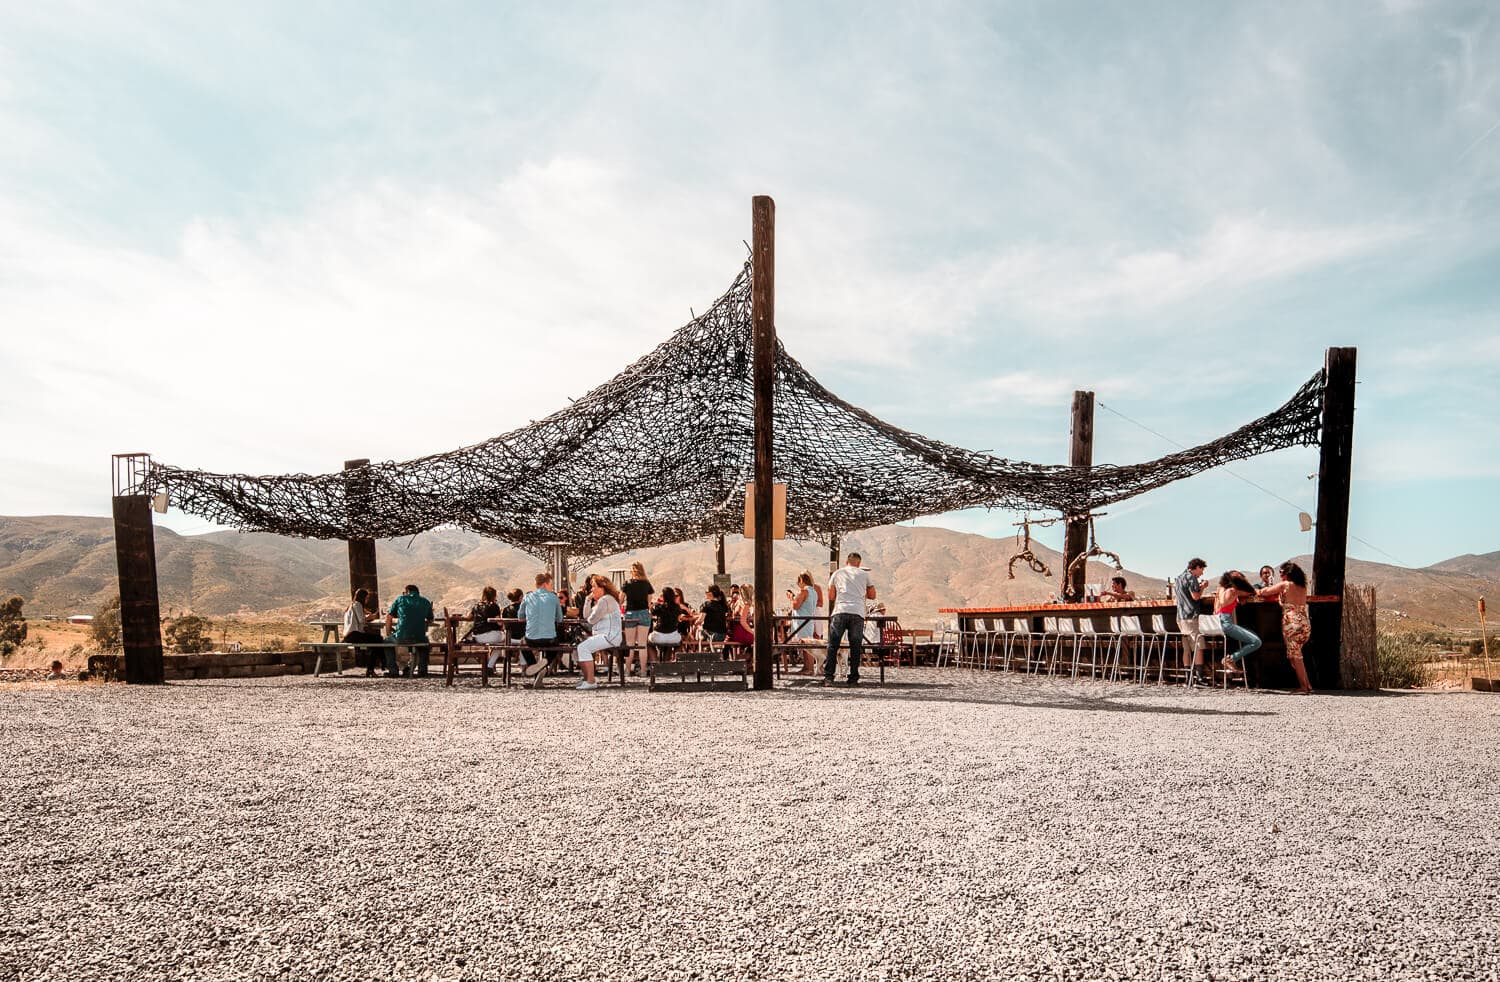 Vena Cava | Valle de Guadalupe in Baja California, Mexico is one of the most up and coming wine regions in the world. From it's innovative designs, picturesque views and award winning wines, keep reading to discover which Valle de Guadalupe wineries you shouldn't miss while in Guadalupe Valley.